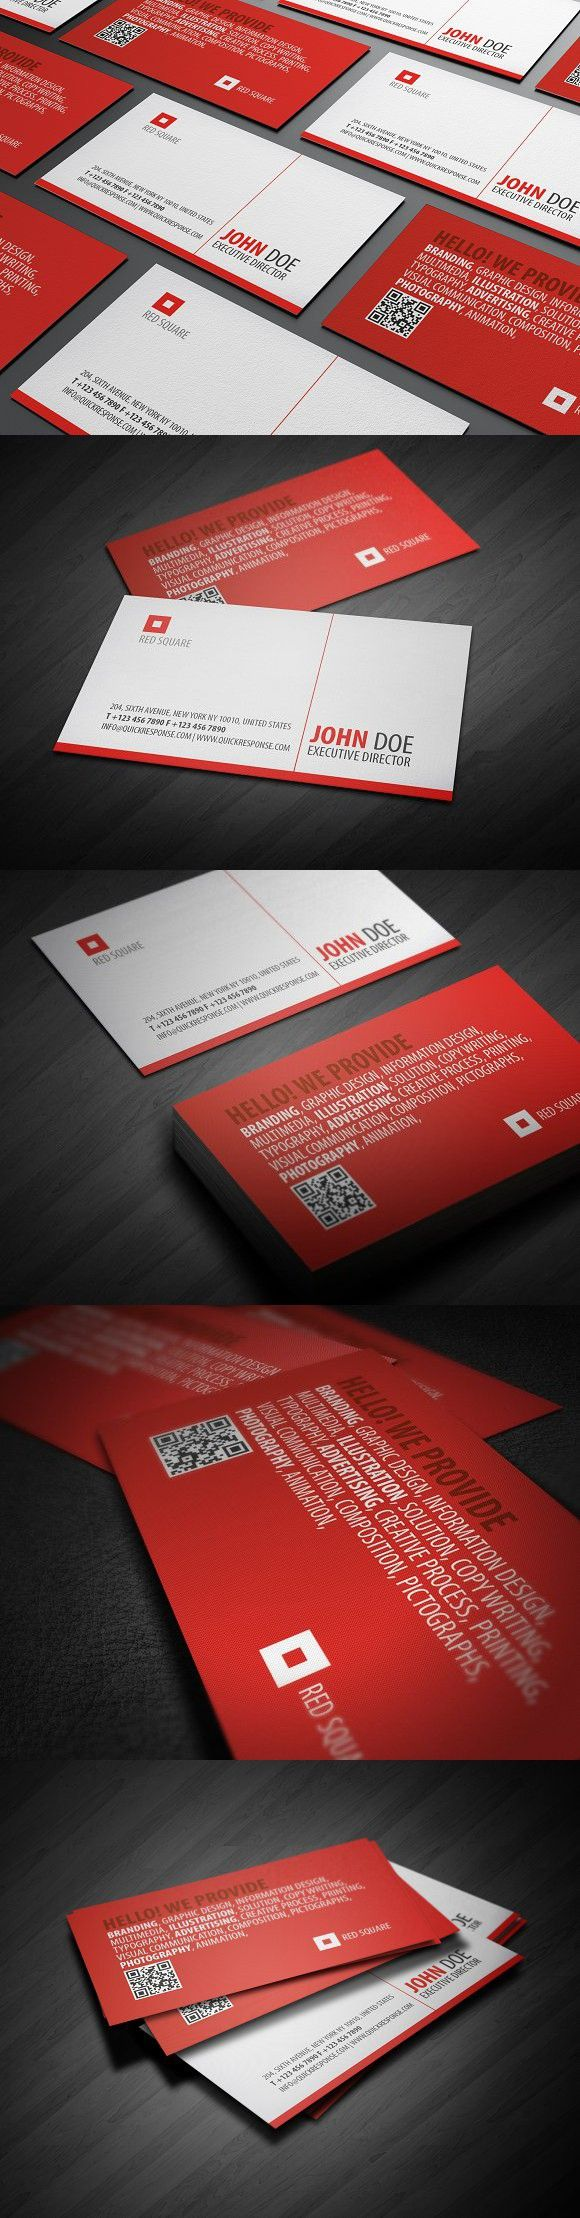 Red Square Qr Business Card Business Cards Business Card Template Psd Business Card Design